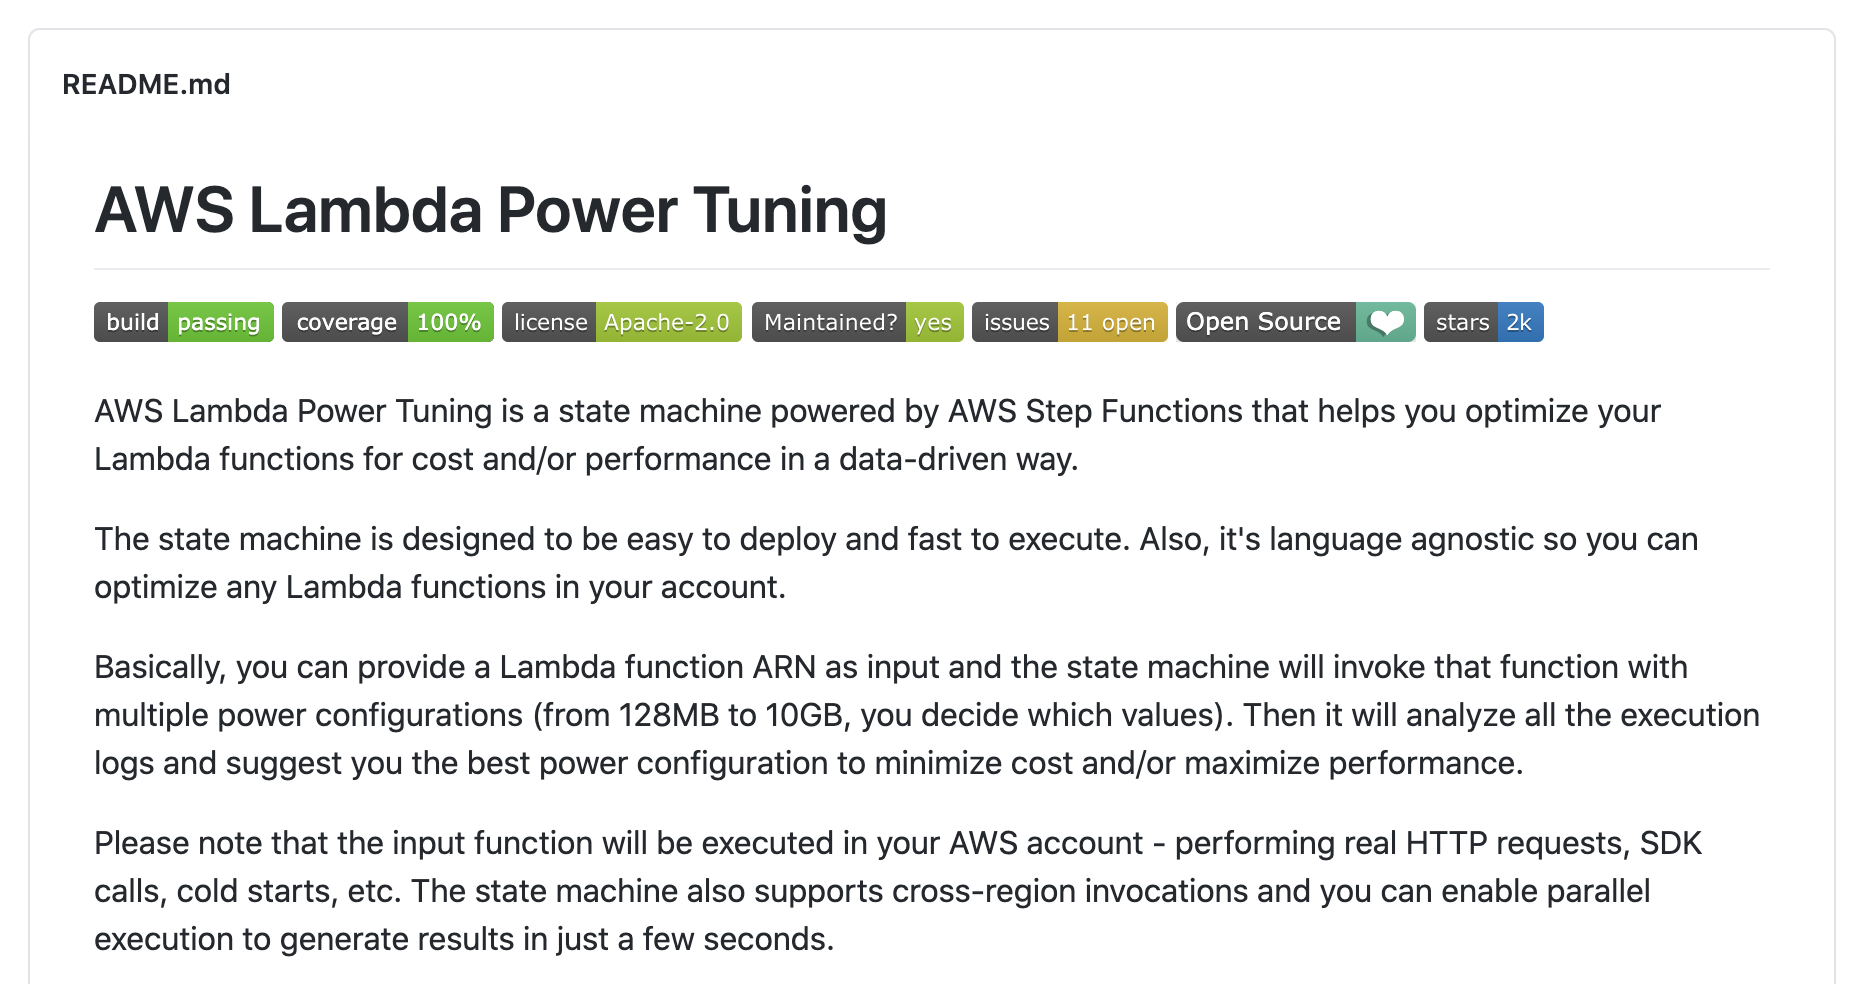 AWS Lambda Power Tuning